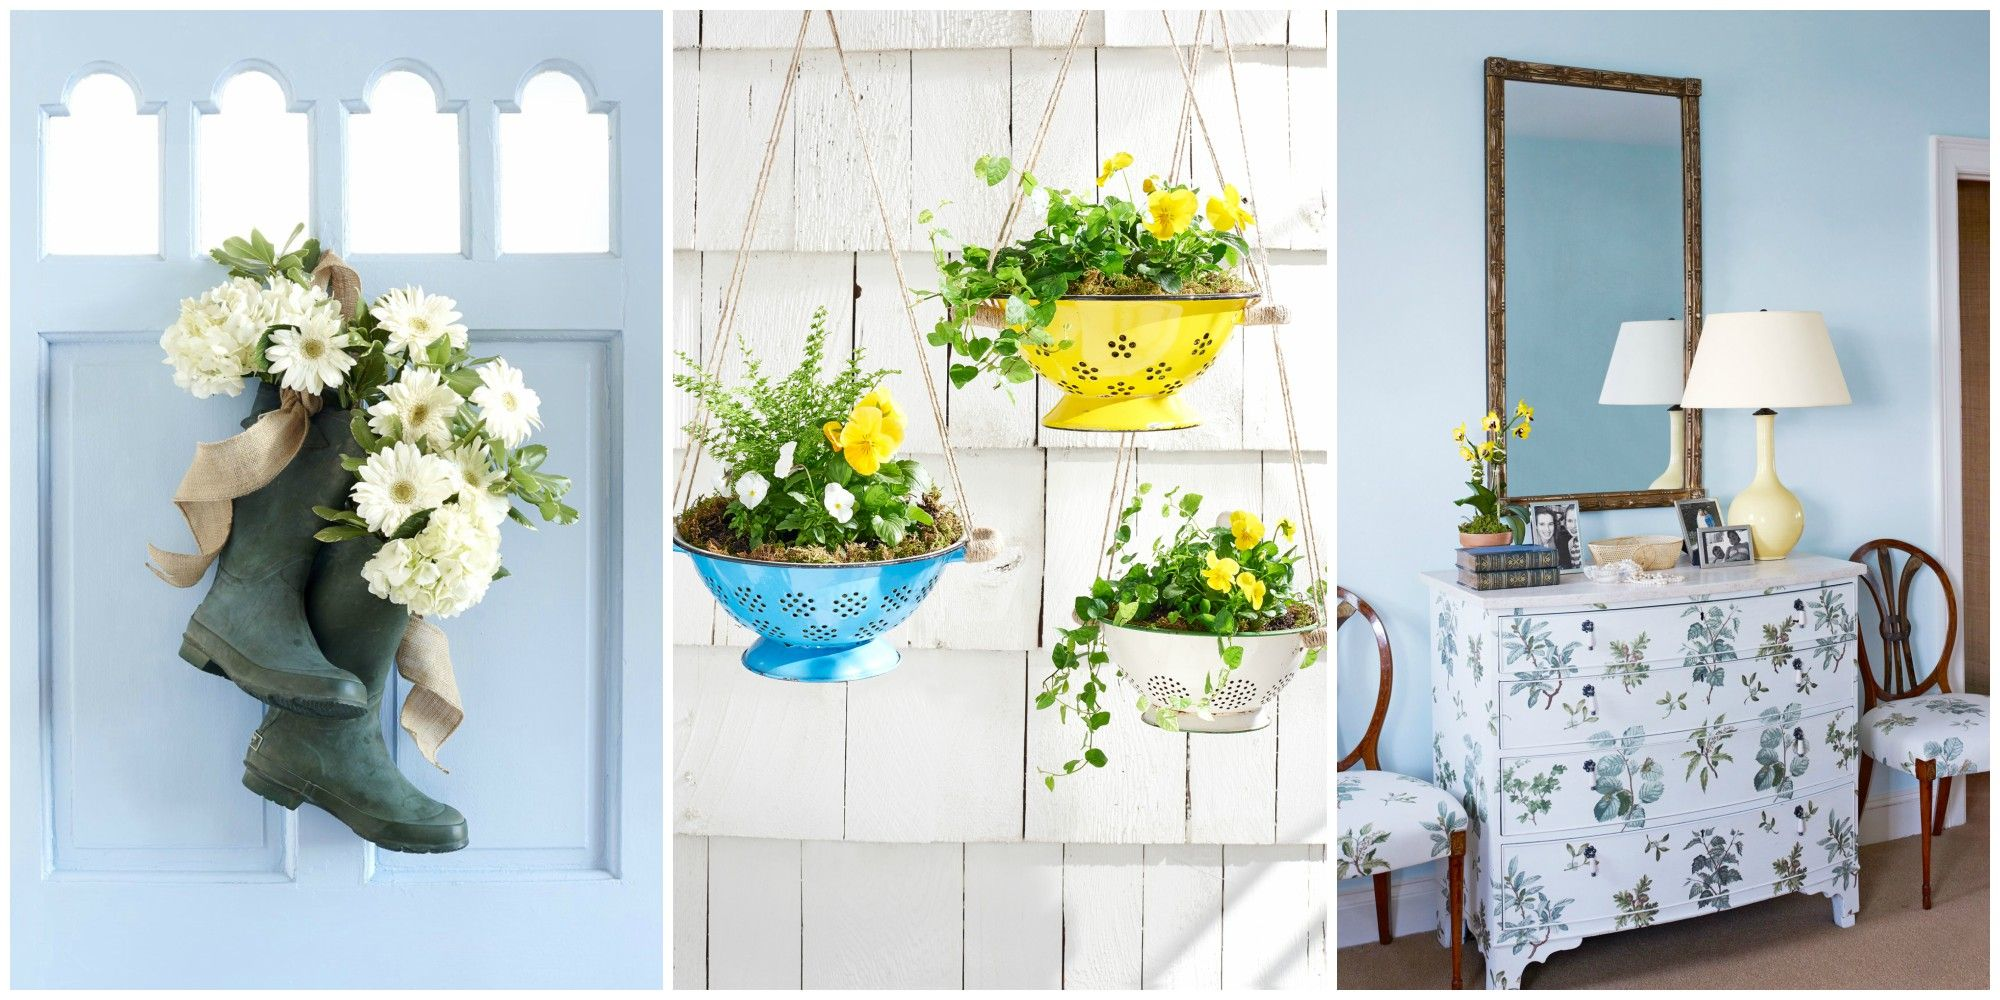 These Simple Projects Will Infuse Your Home With A Breath Of Fresh Country Air Also Check Out These Pretty Diy Wreaths And Beautiful Flower Craft Ideas For